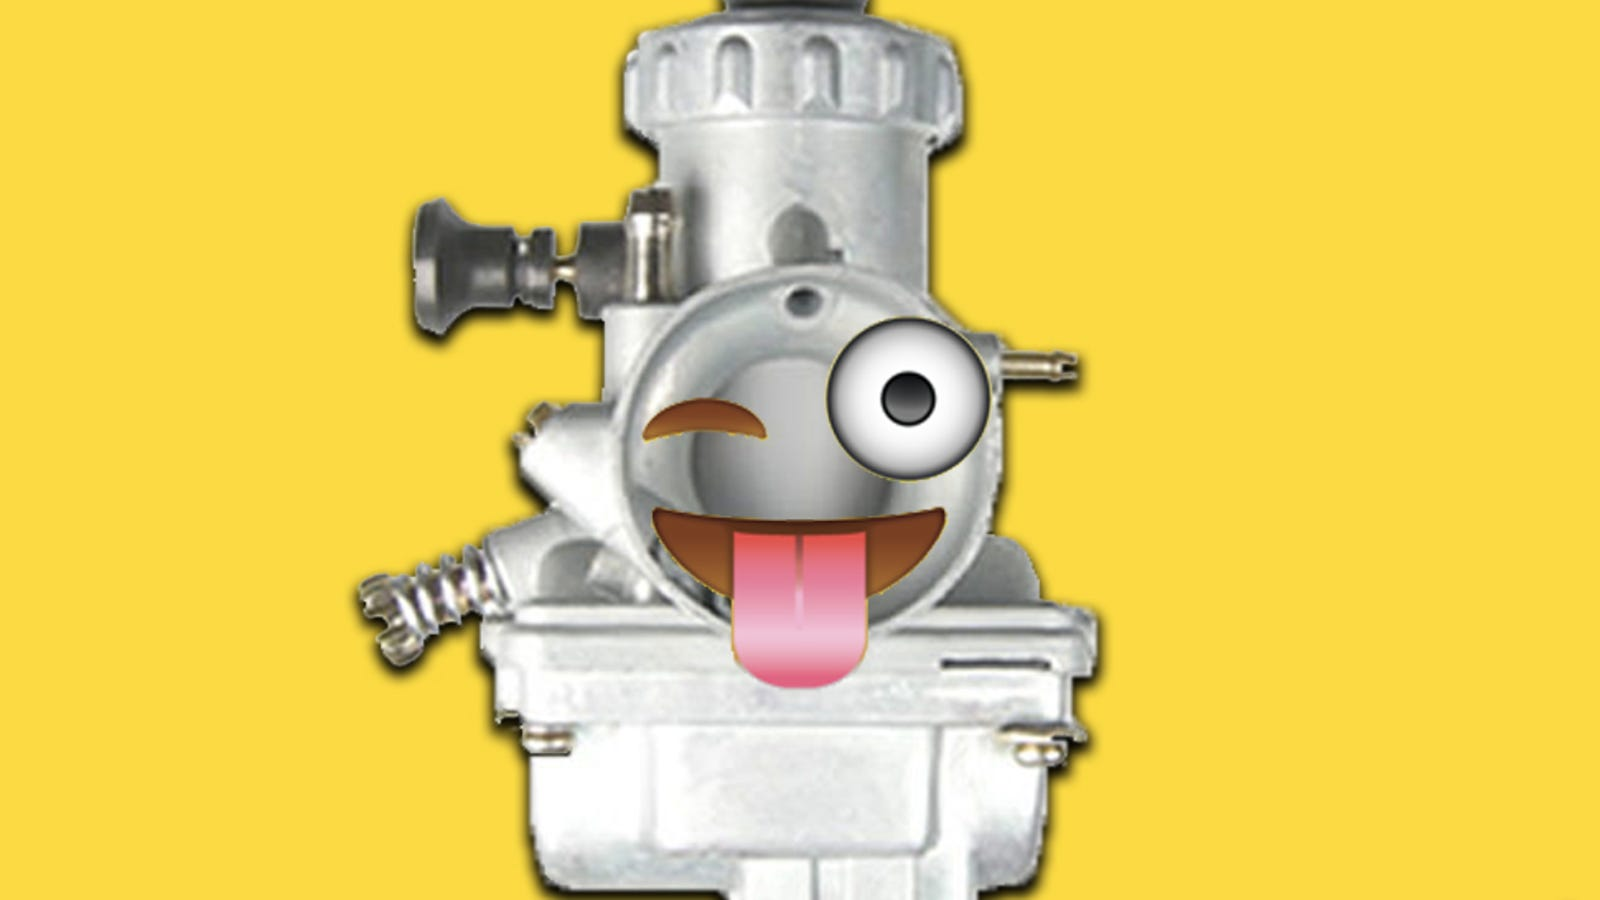 Cleaning Carburetors For The First Time: What The Manual Won't Tell You